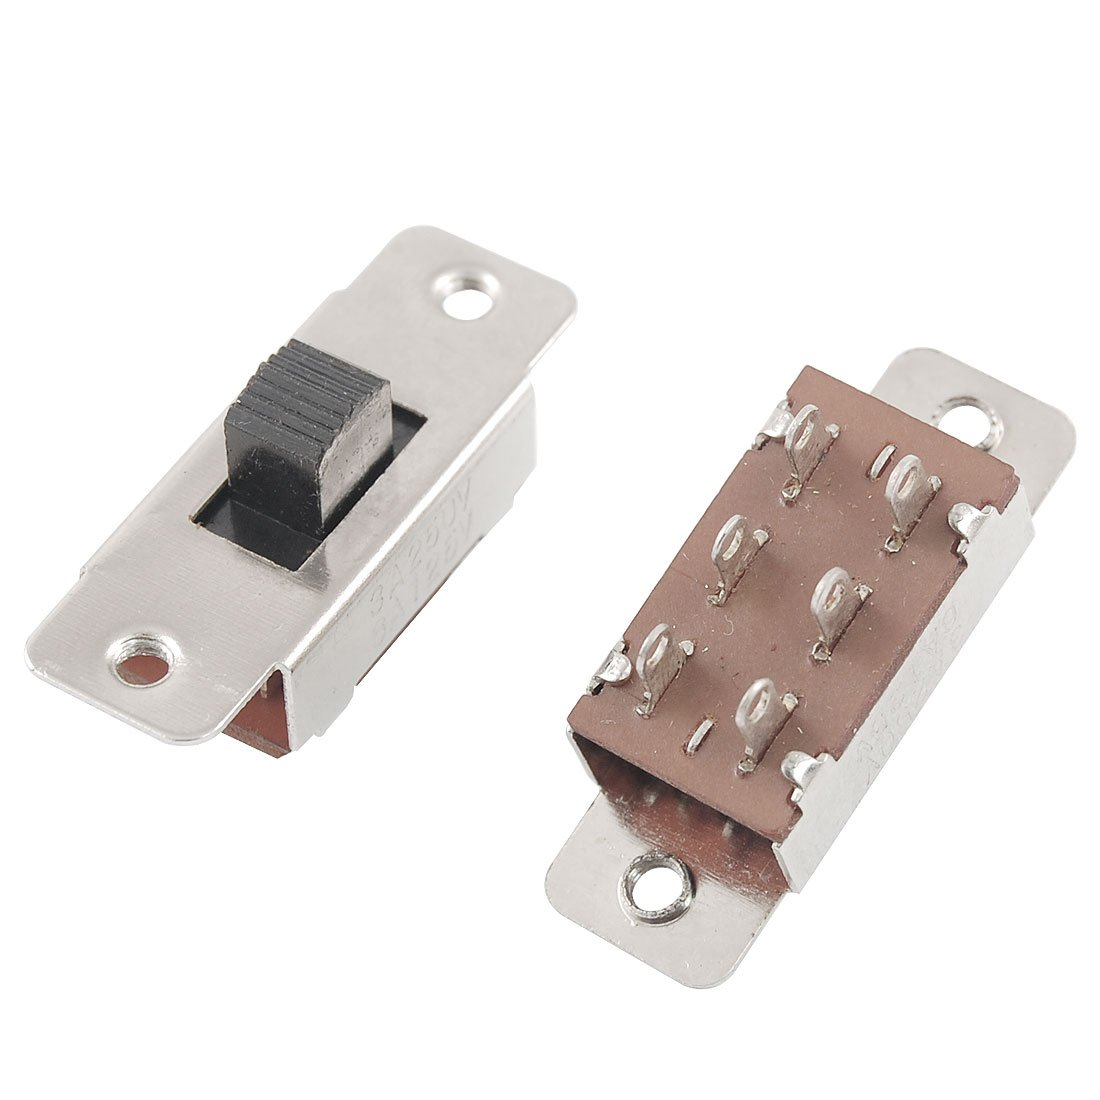 uxcell 5 Pcs On//Off//On 3 Position DPDT 2P3T PCB Panel Slide Switch 6A//125V 3A//250V AC